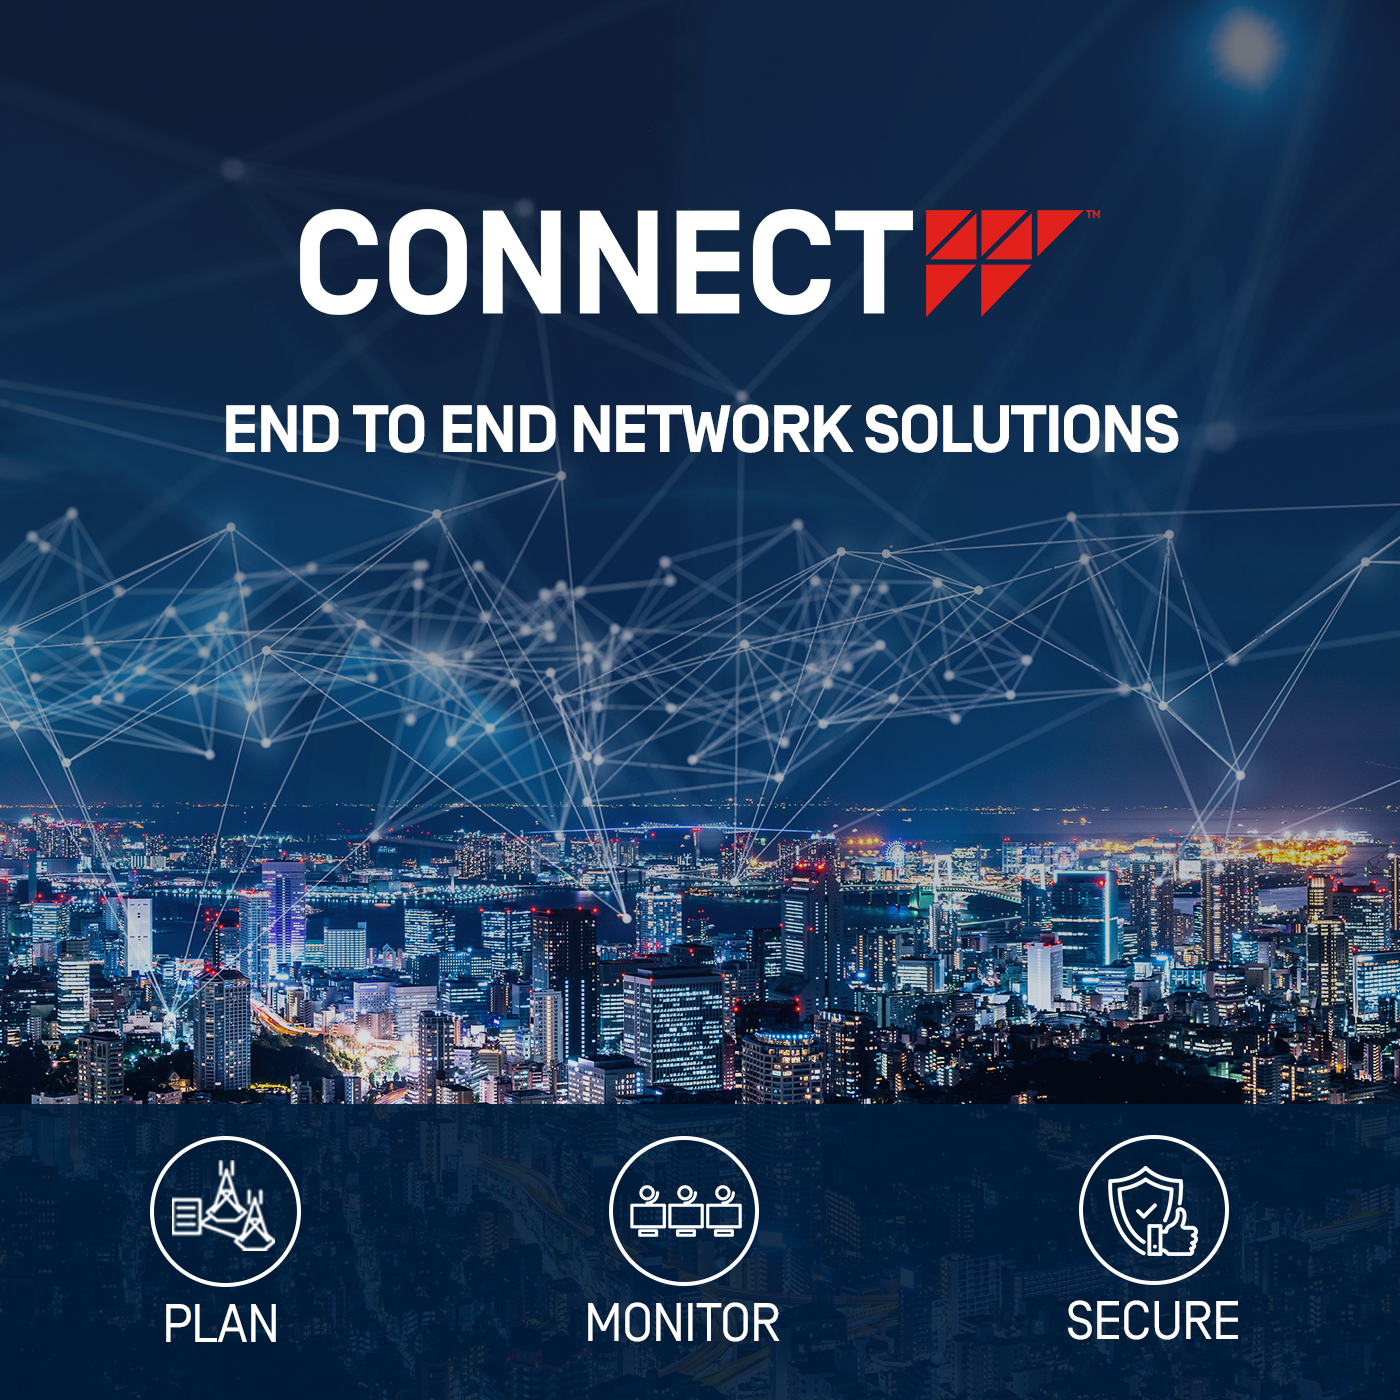 CONNECT44 Group joins Ericsson Industry 4.0 partner program for Professional Services Partners as a System Integrator.